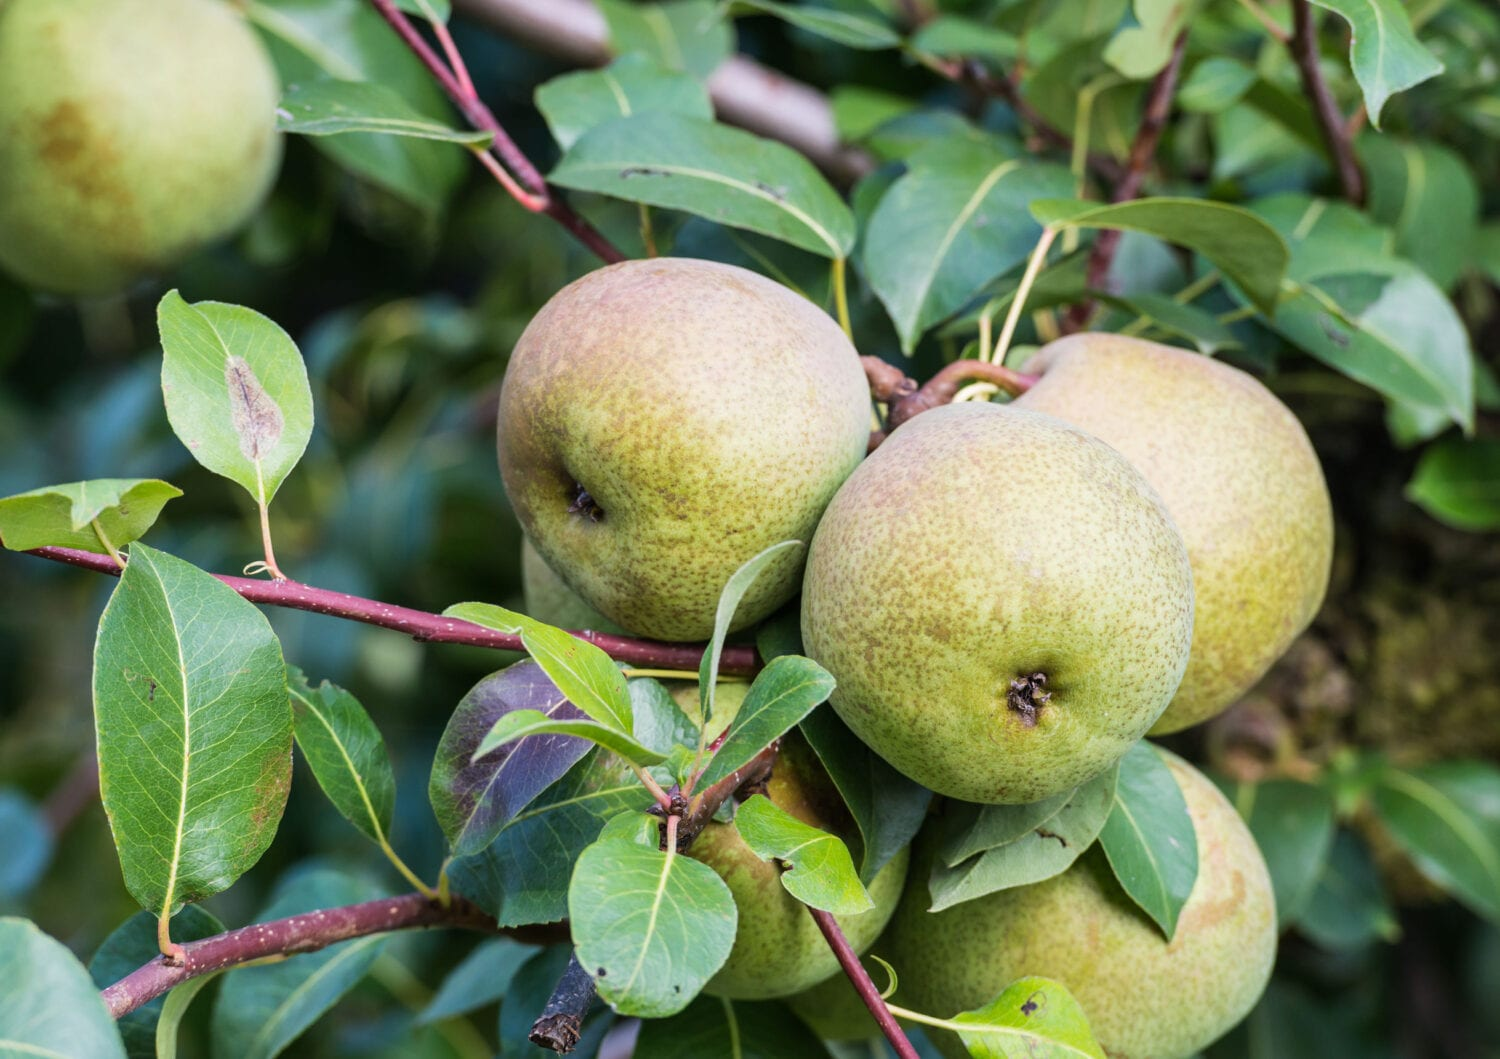 Closeup of almost ripe pears